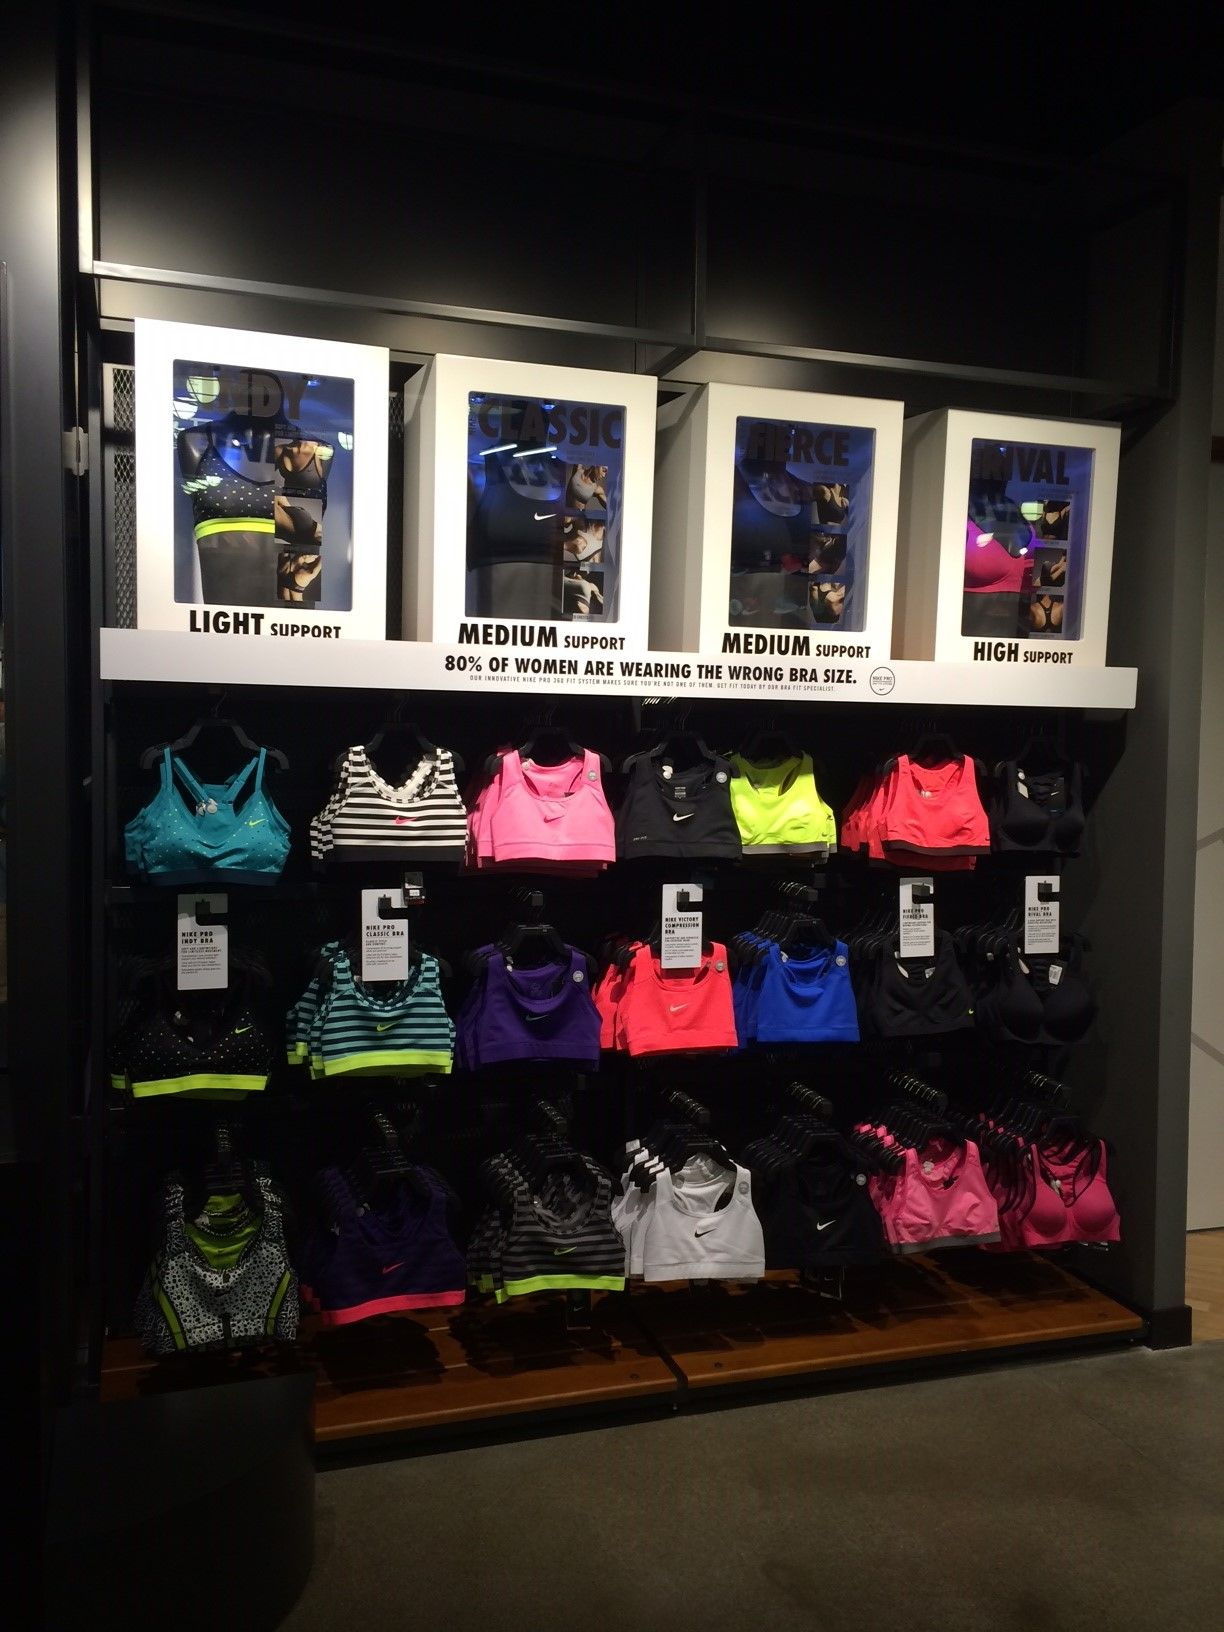 e685e48f43 Nike womens bra bar retail sports apparel wall display.